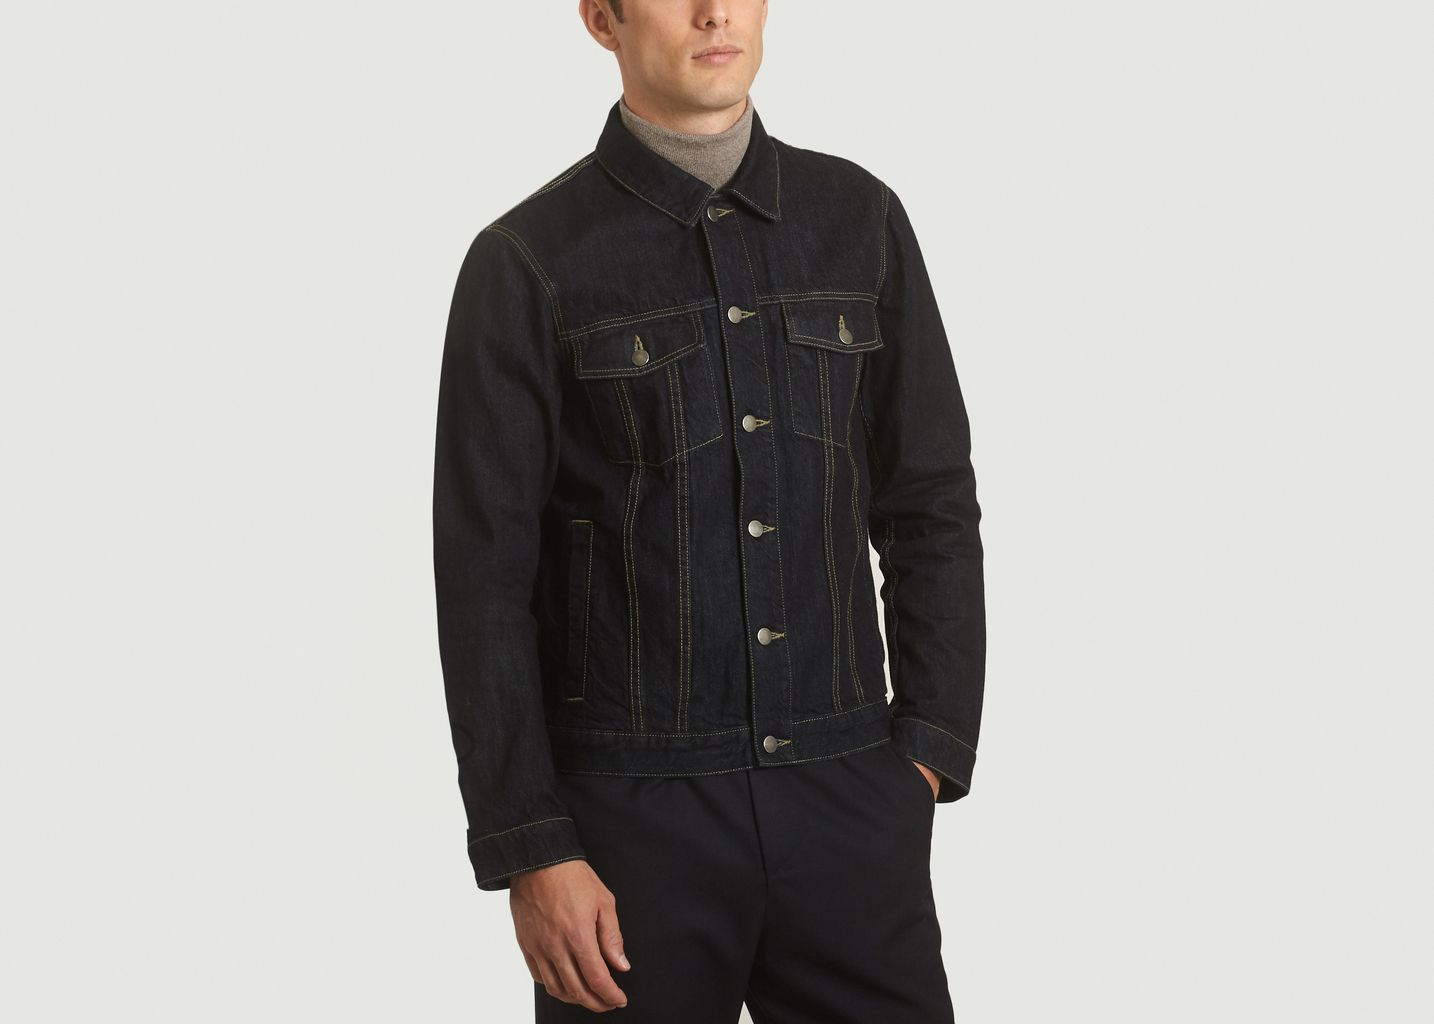 Brut Veste Selvedge En Jean Paris L'exception BwqtwP